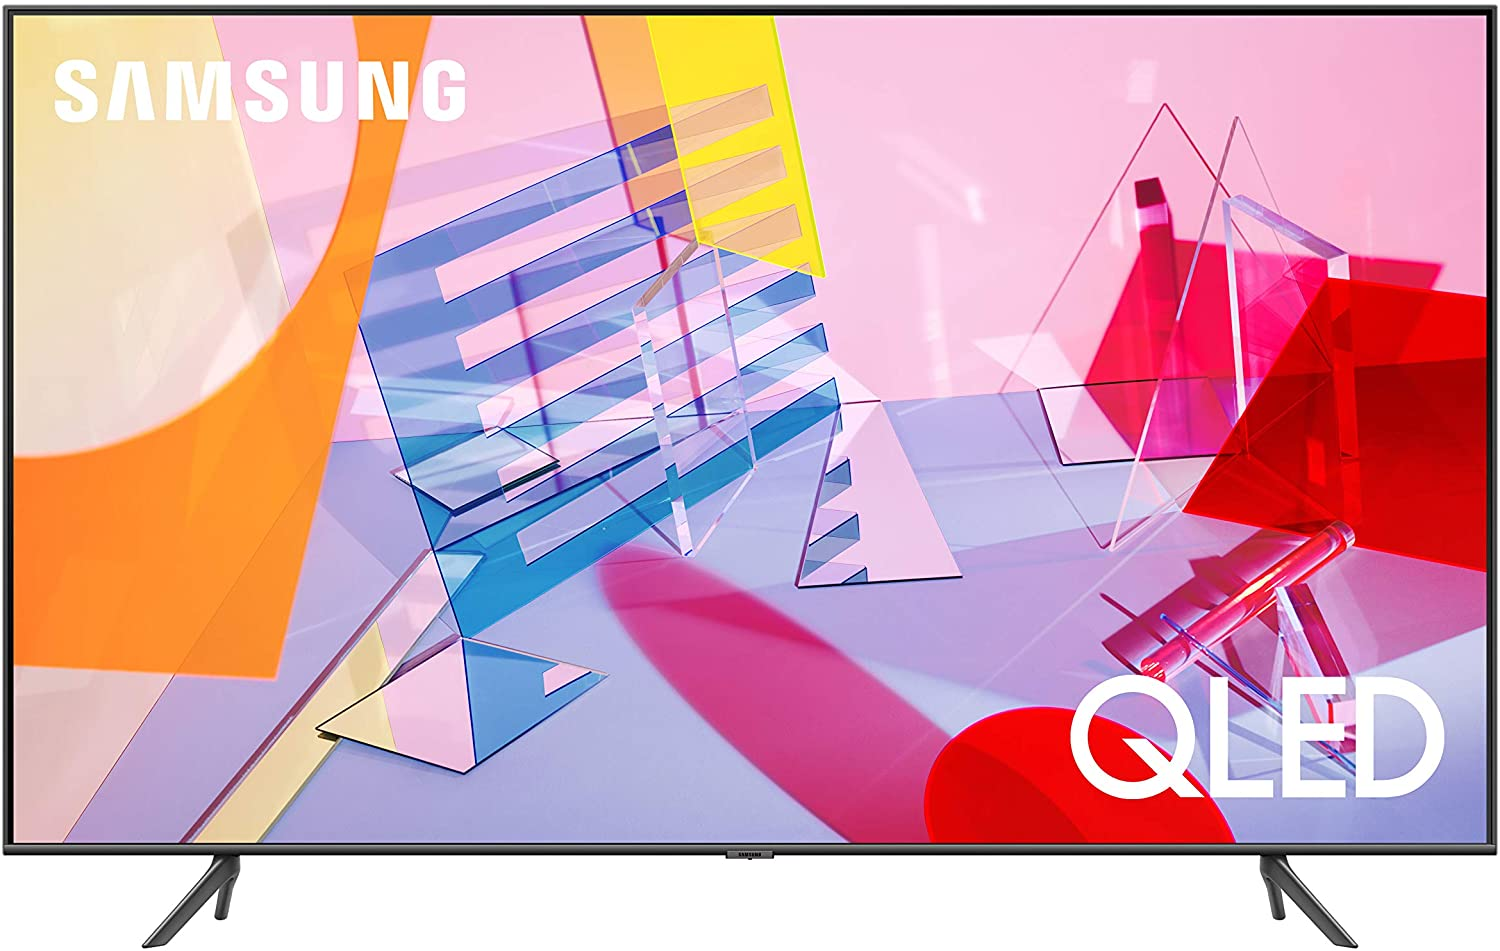 SAMSUNG Q60T Series 55-inch Class QLED Smart TV | 4K, UHD Dual LED Quantum HDR | Alexa Built-in | QN55Q60TAFXZA, 2020 Model